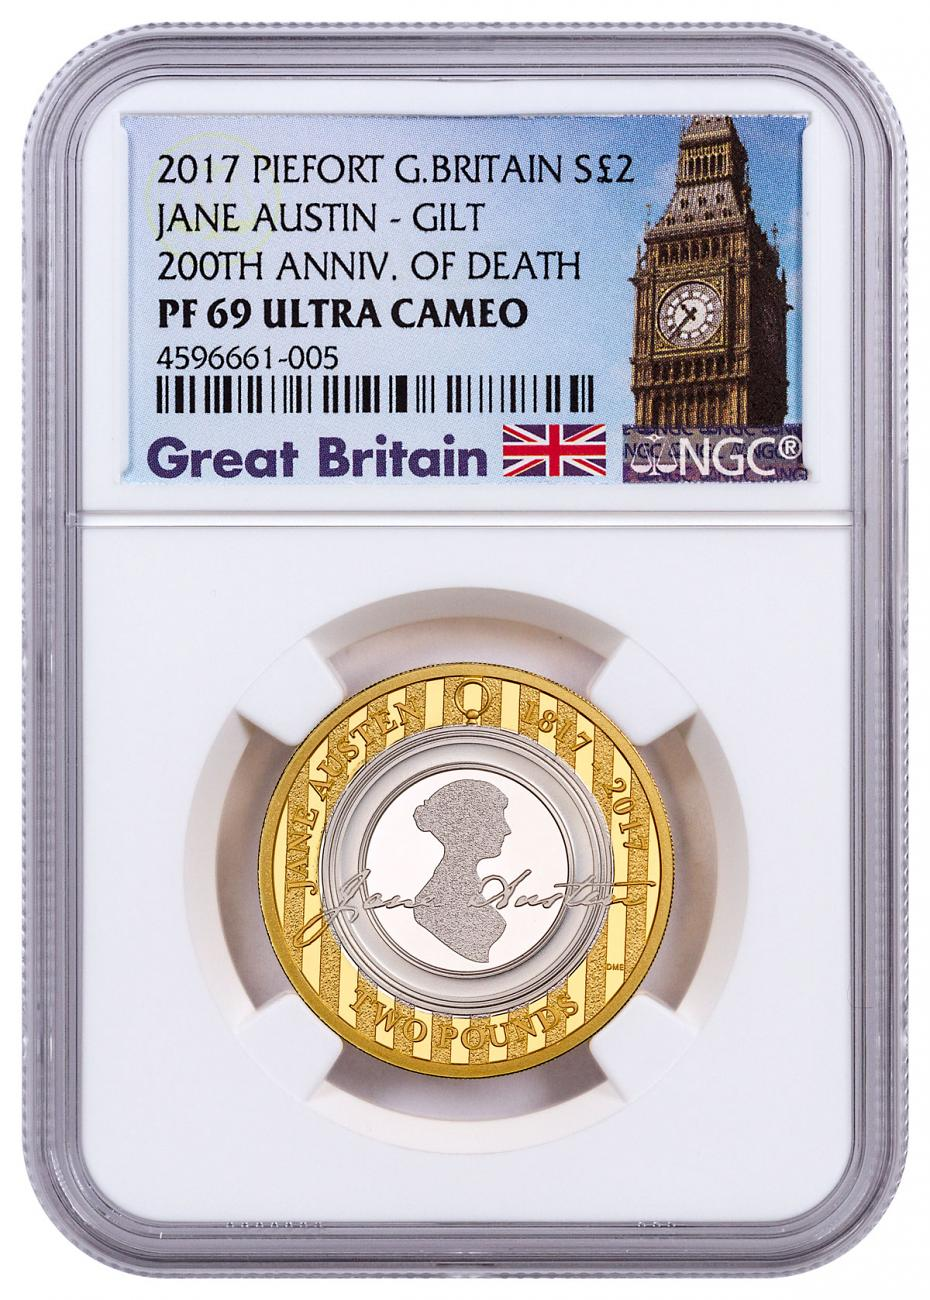 2017 Great Britain An Enduring Romance with Jane Austen Piedfort Silver Gilt Proof £2 Coin NGC PF69 UC Exclusive Big Ben Label